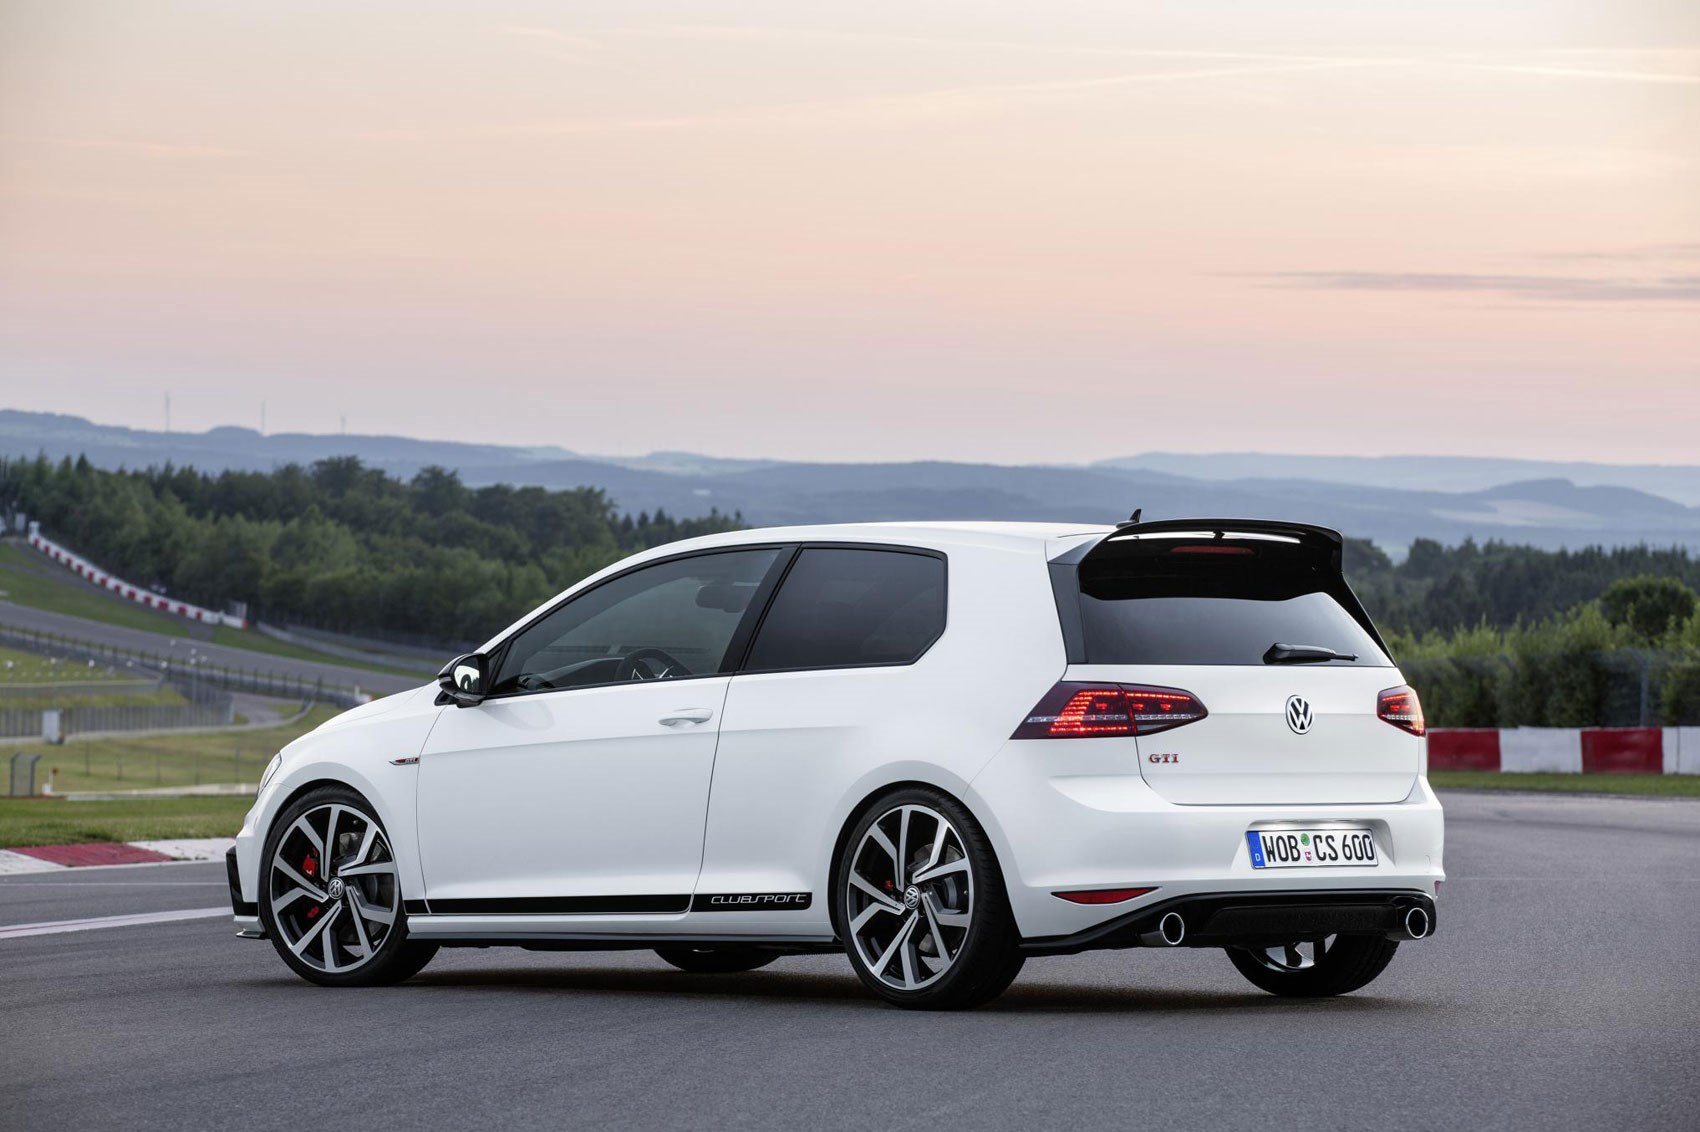 VW Golf GTI Clubsport Rear Side View